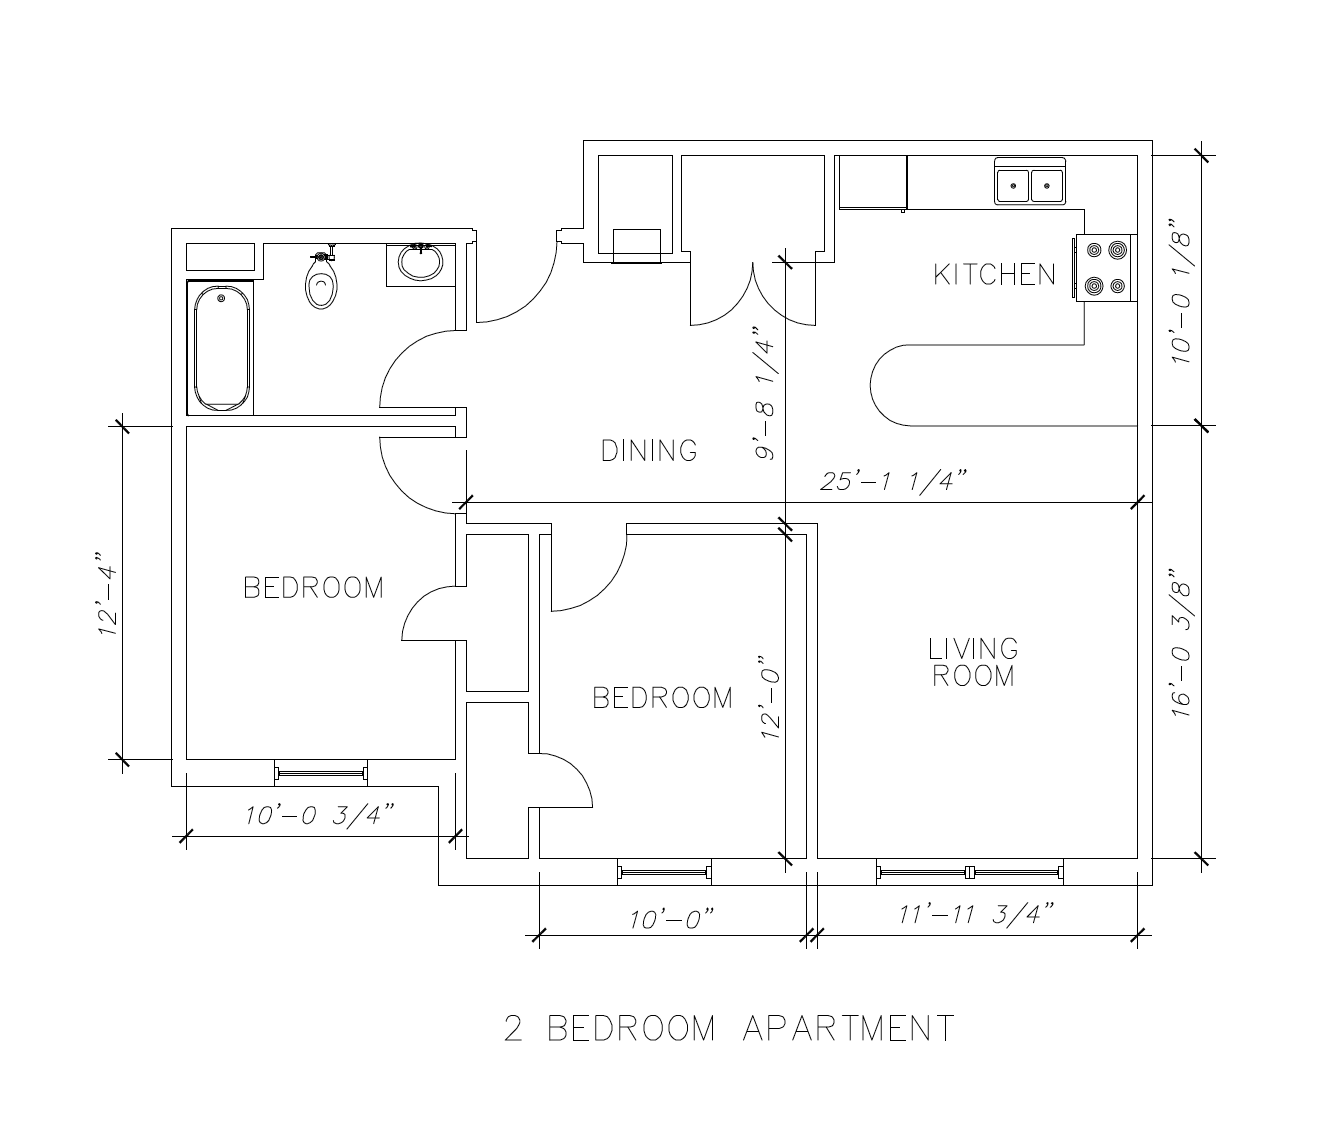 Seahawk Landing 2 Bedroom Floor Plan and Room Dimensions